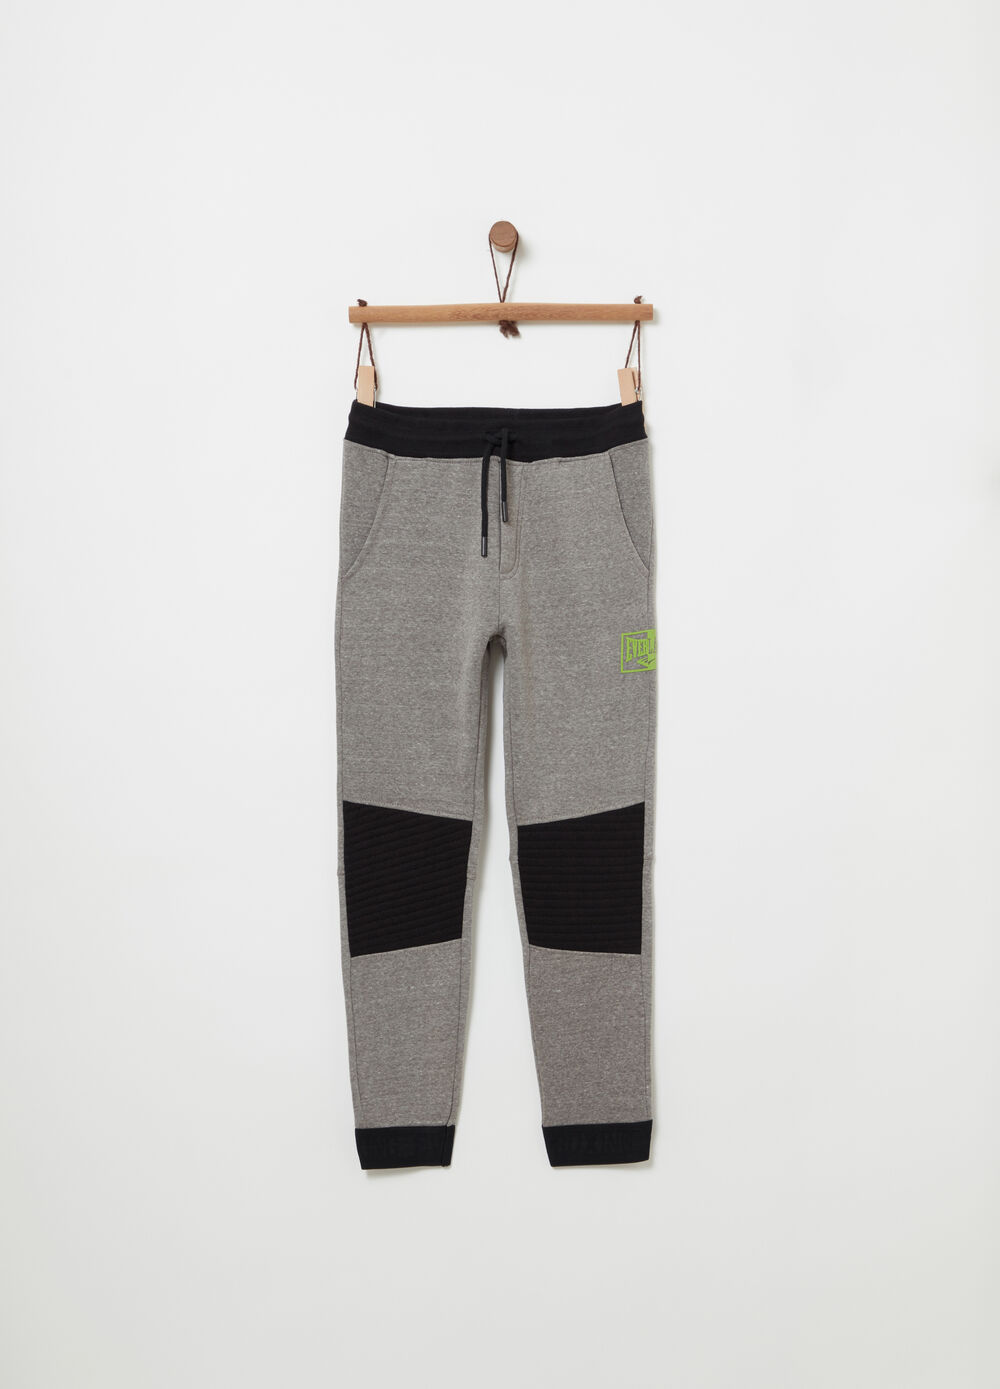 Fleece trousers with print on the side